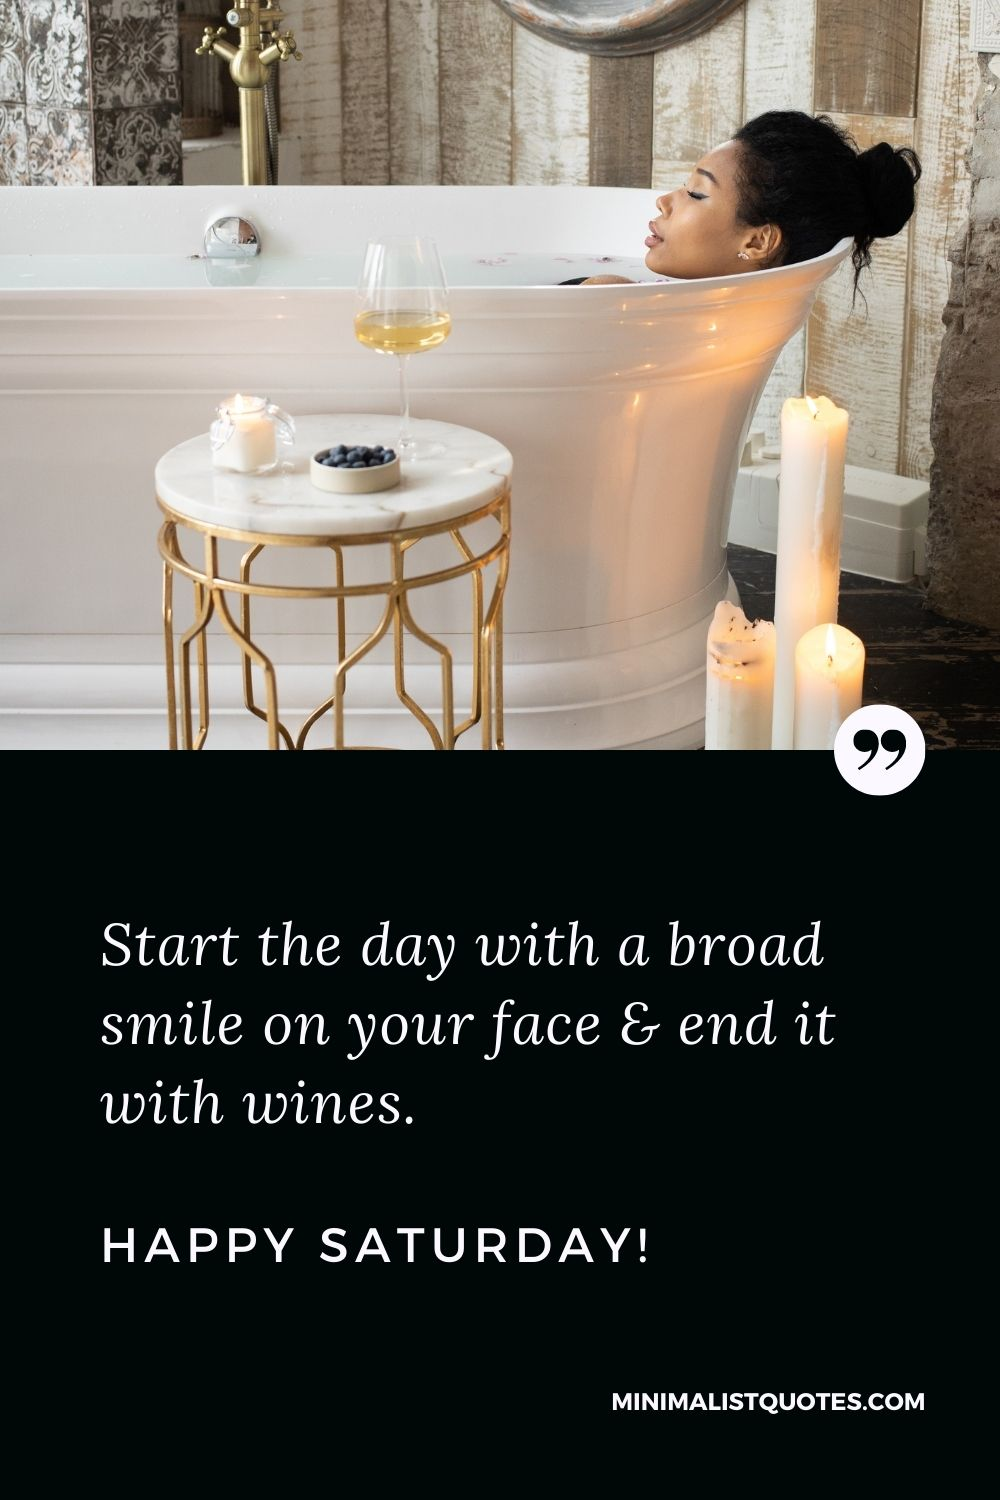 Happy Saturday Quote, Wish & Message With Image: Start the day with a broad smile on your face & end it with wines.